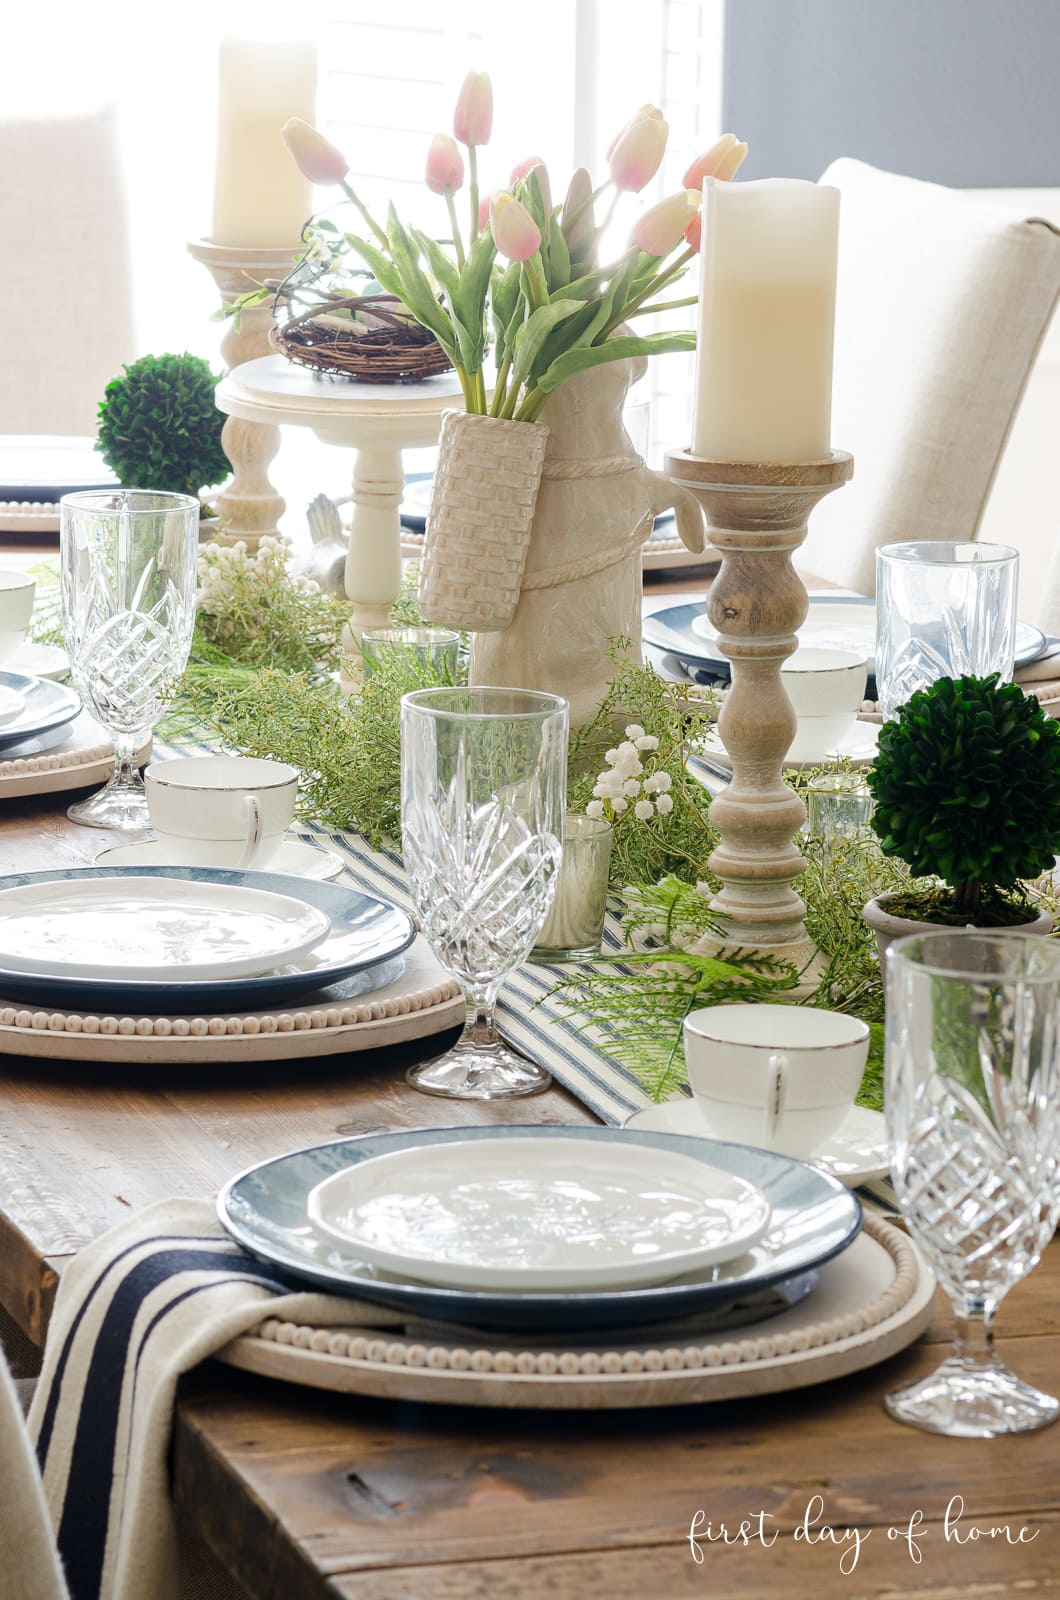 Spring table decor with candles, greenery and blue and white place settings